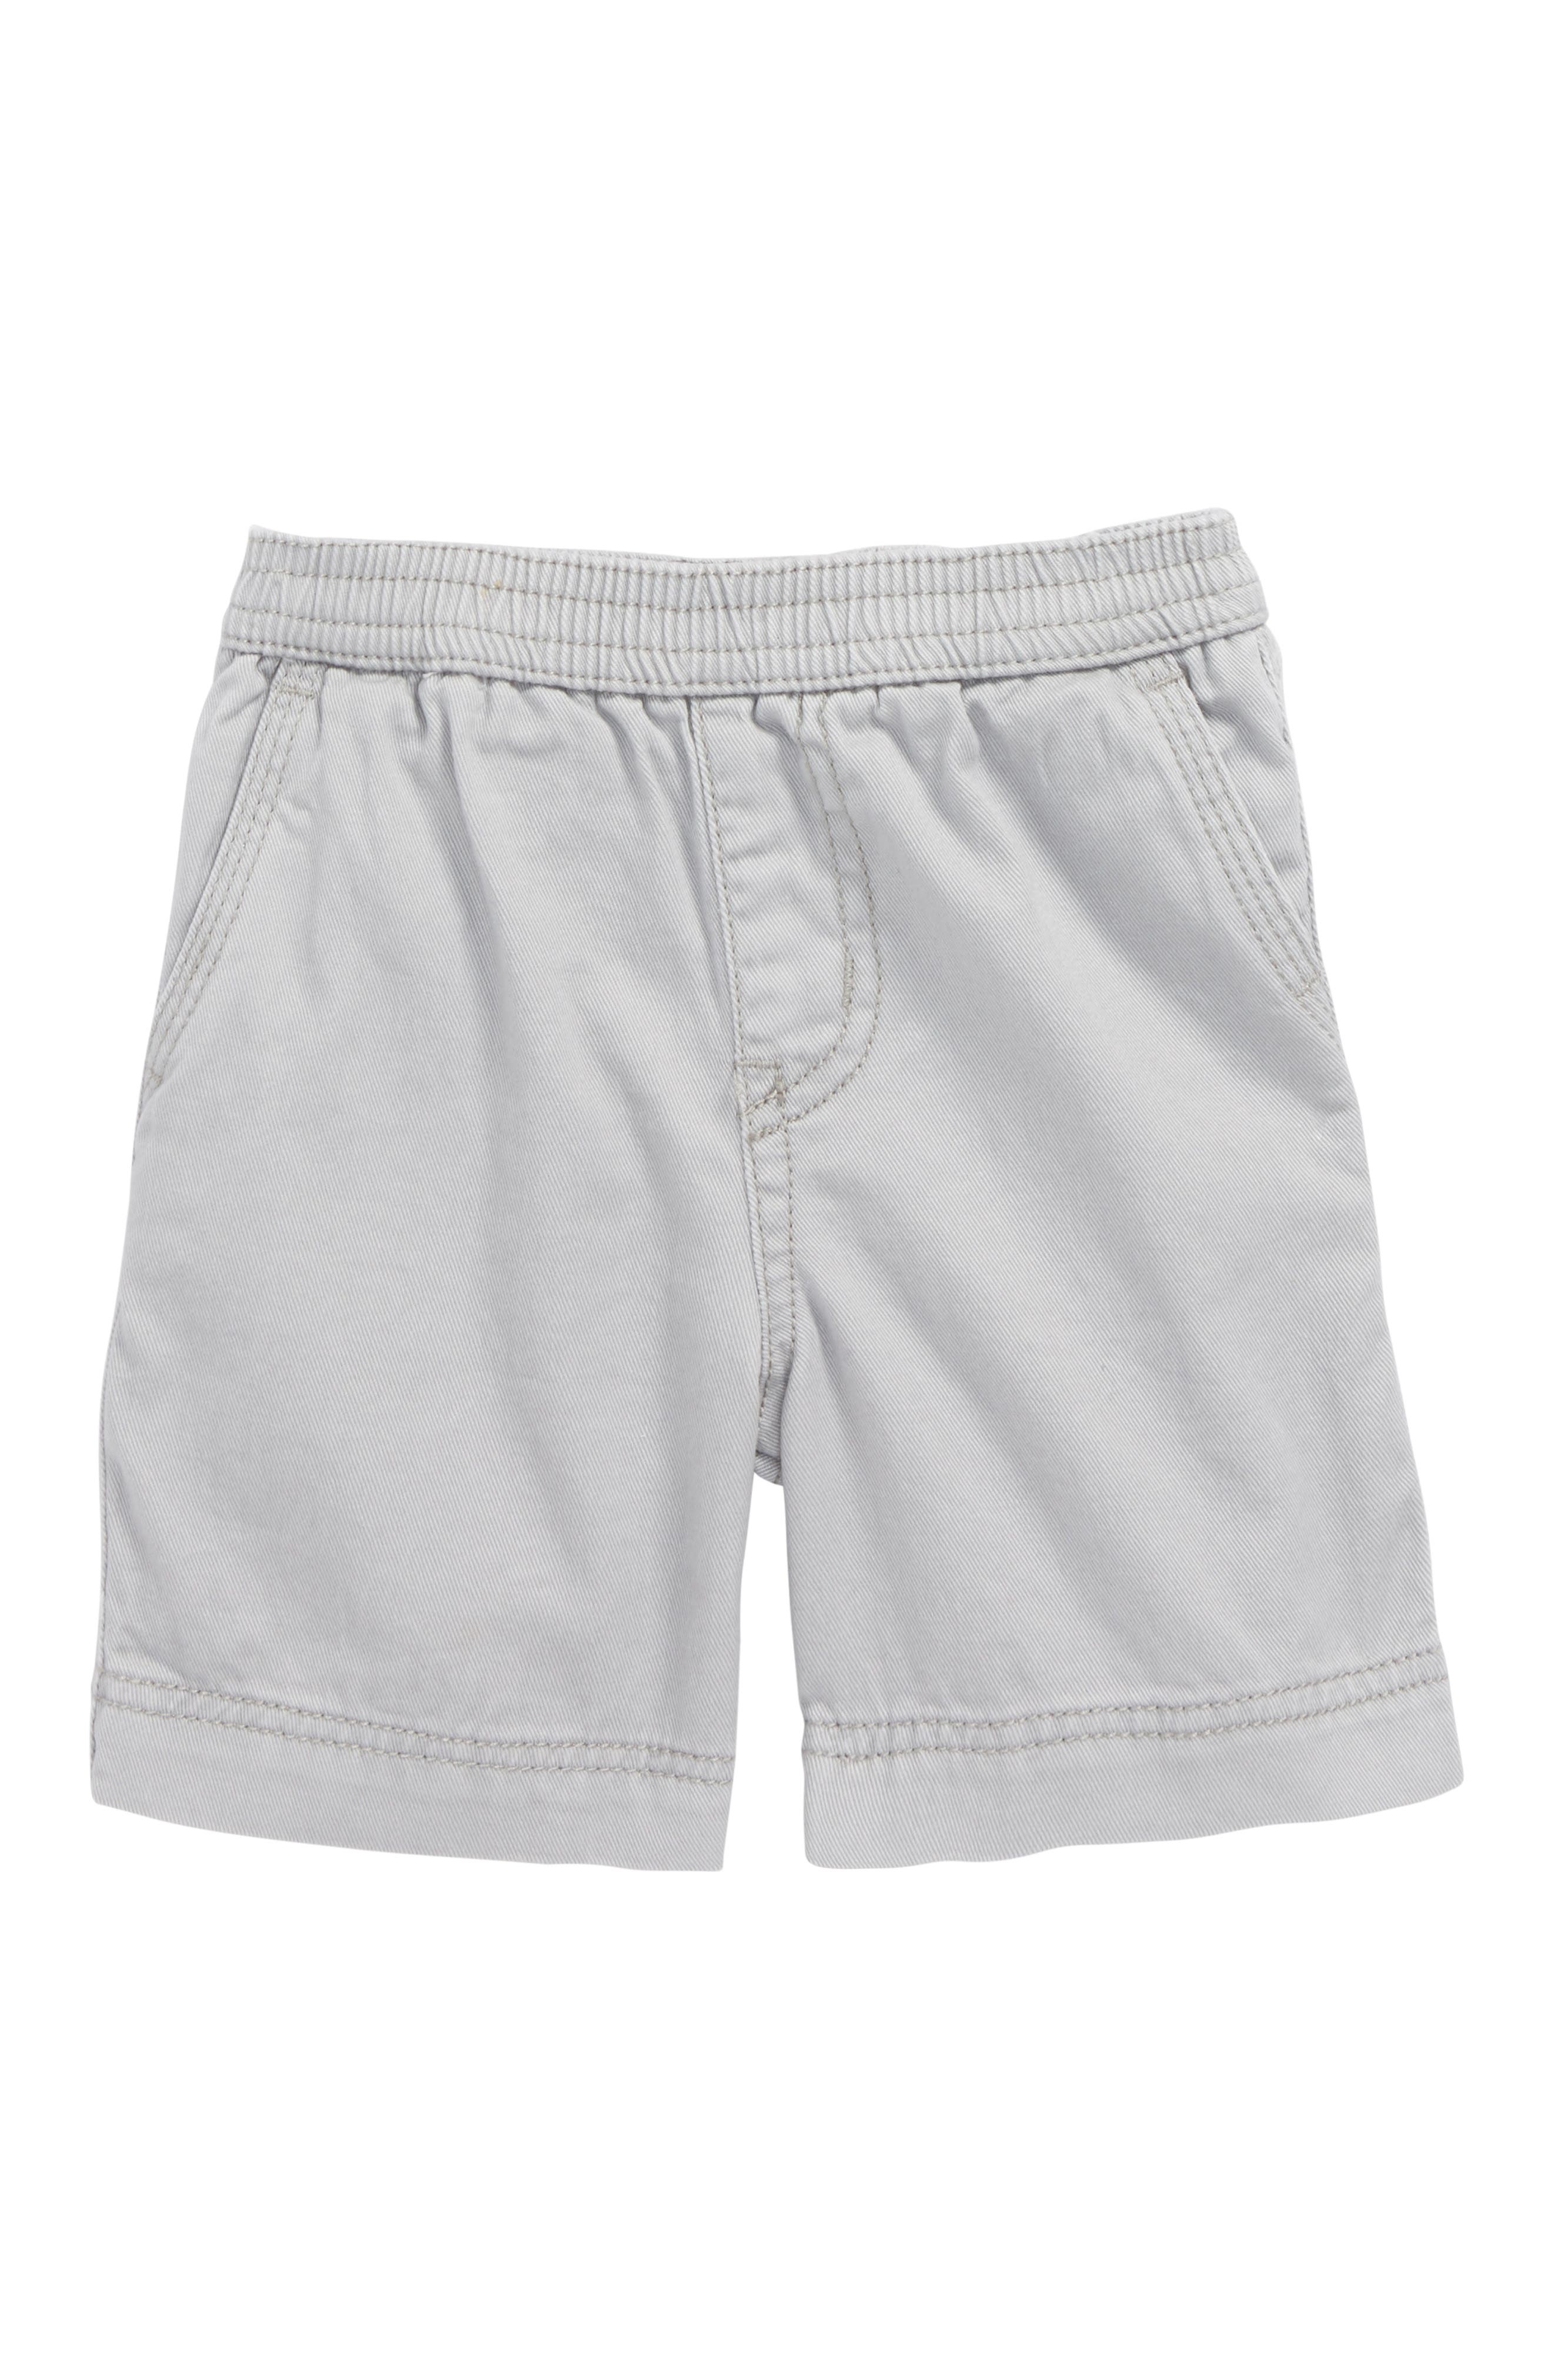 Easy Does It Twill Shorts,                         Main,                         color, 052